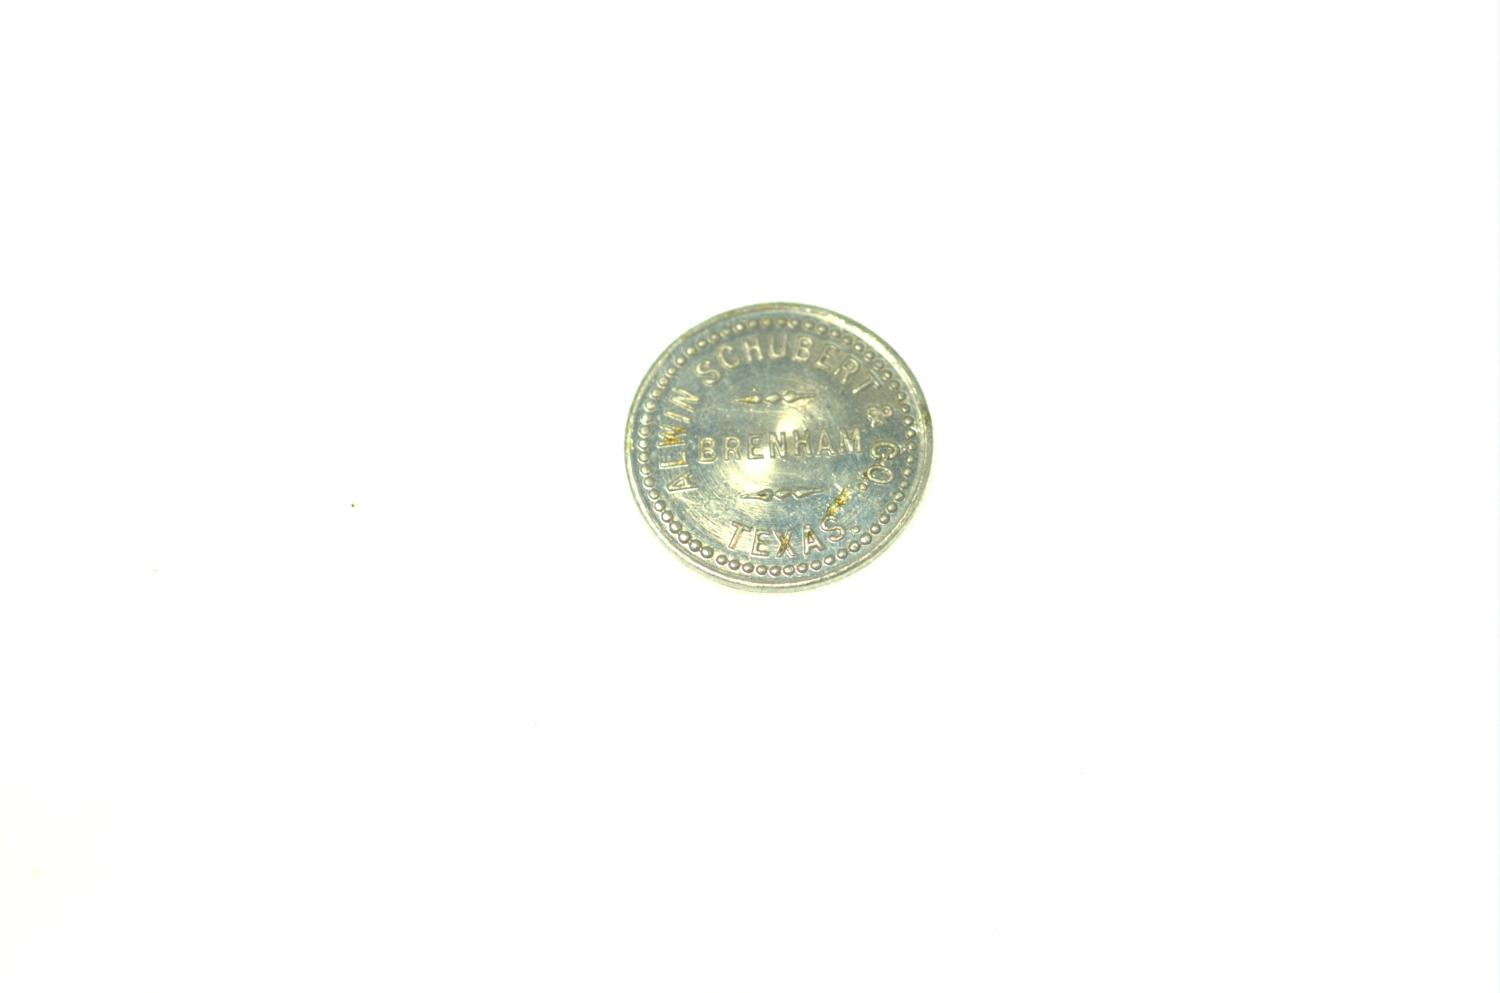 [5-Cent Merchandise Token]                                                                                                      [Sequence #]: 1 of 2